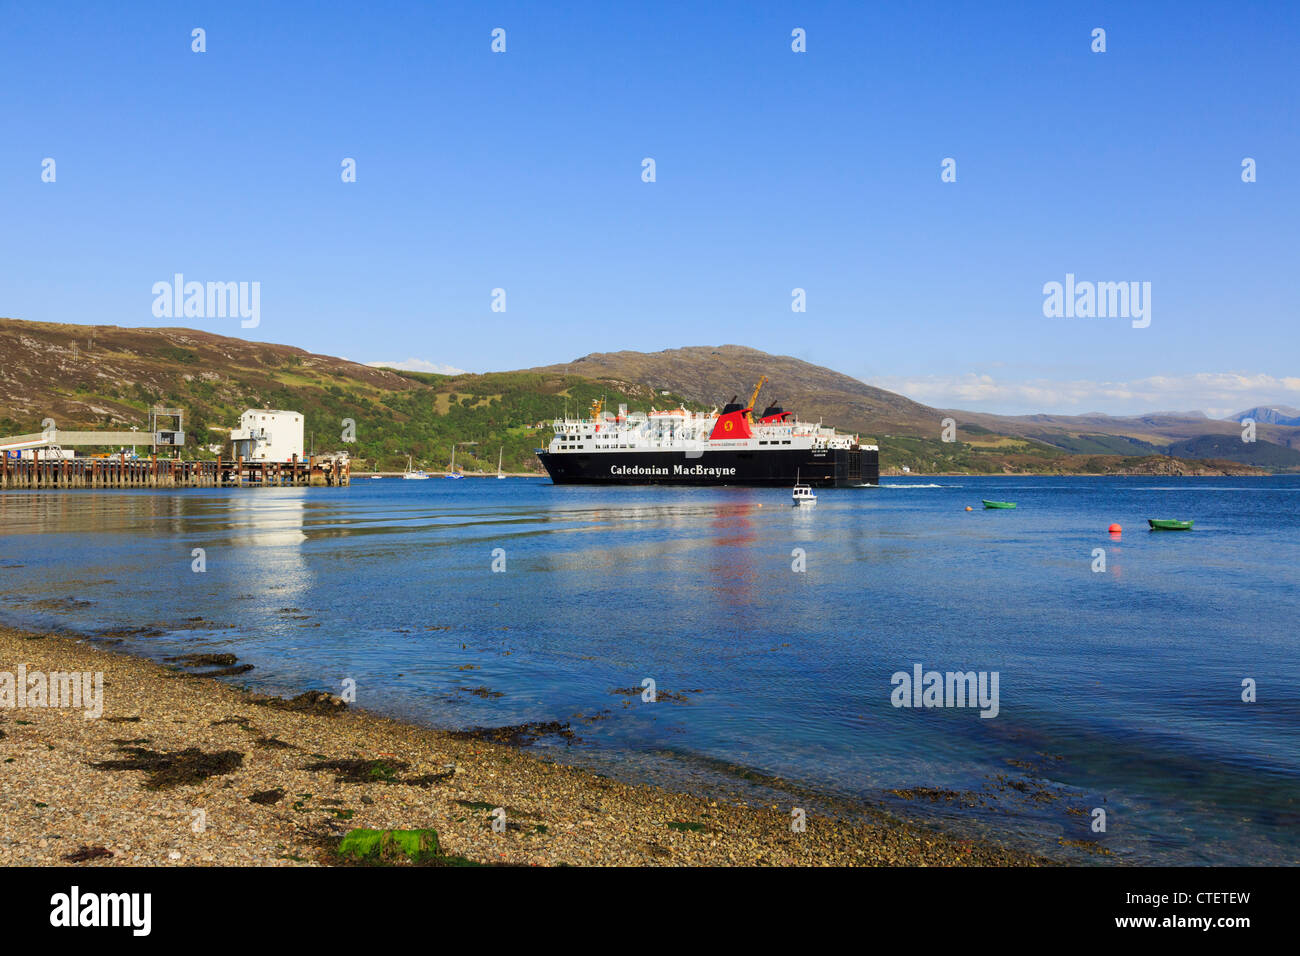 Caledonian MacBrayne ferry from Stornoway Isle of Lewis, sailing into port on Loch Broom Ullapool Wester Ross Scotland - Stock Image